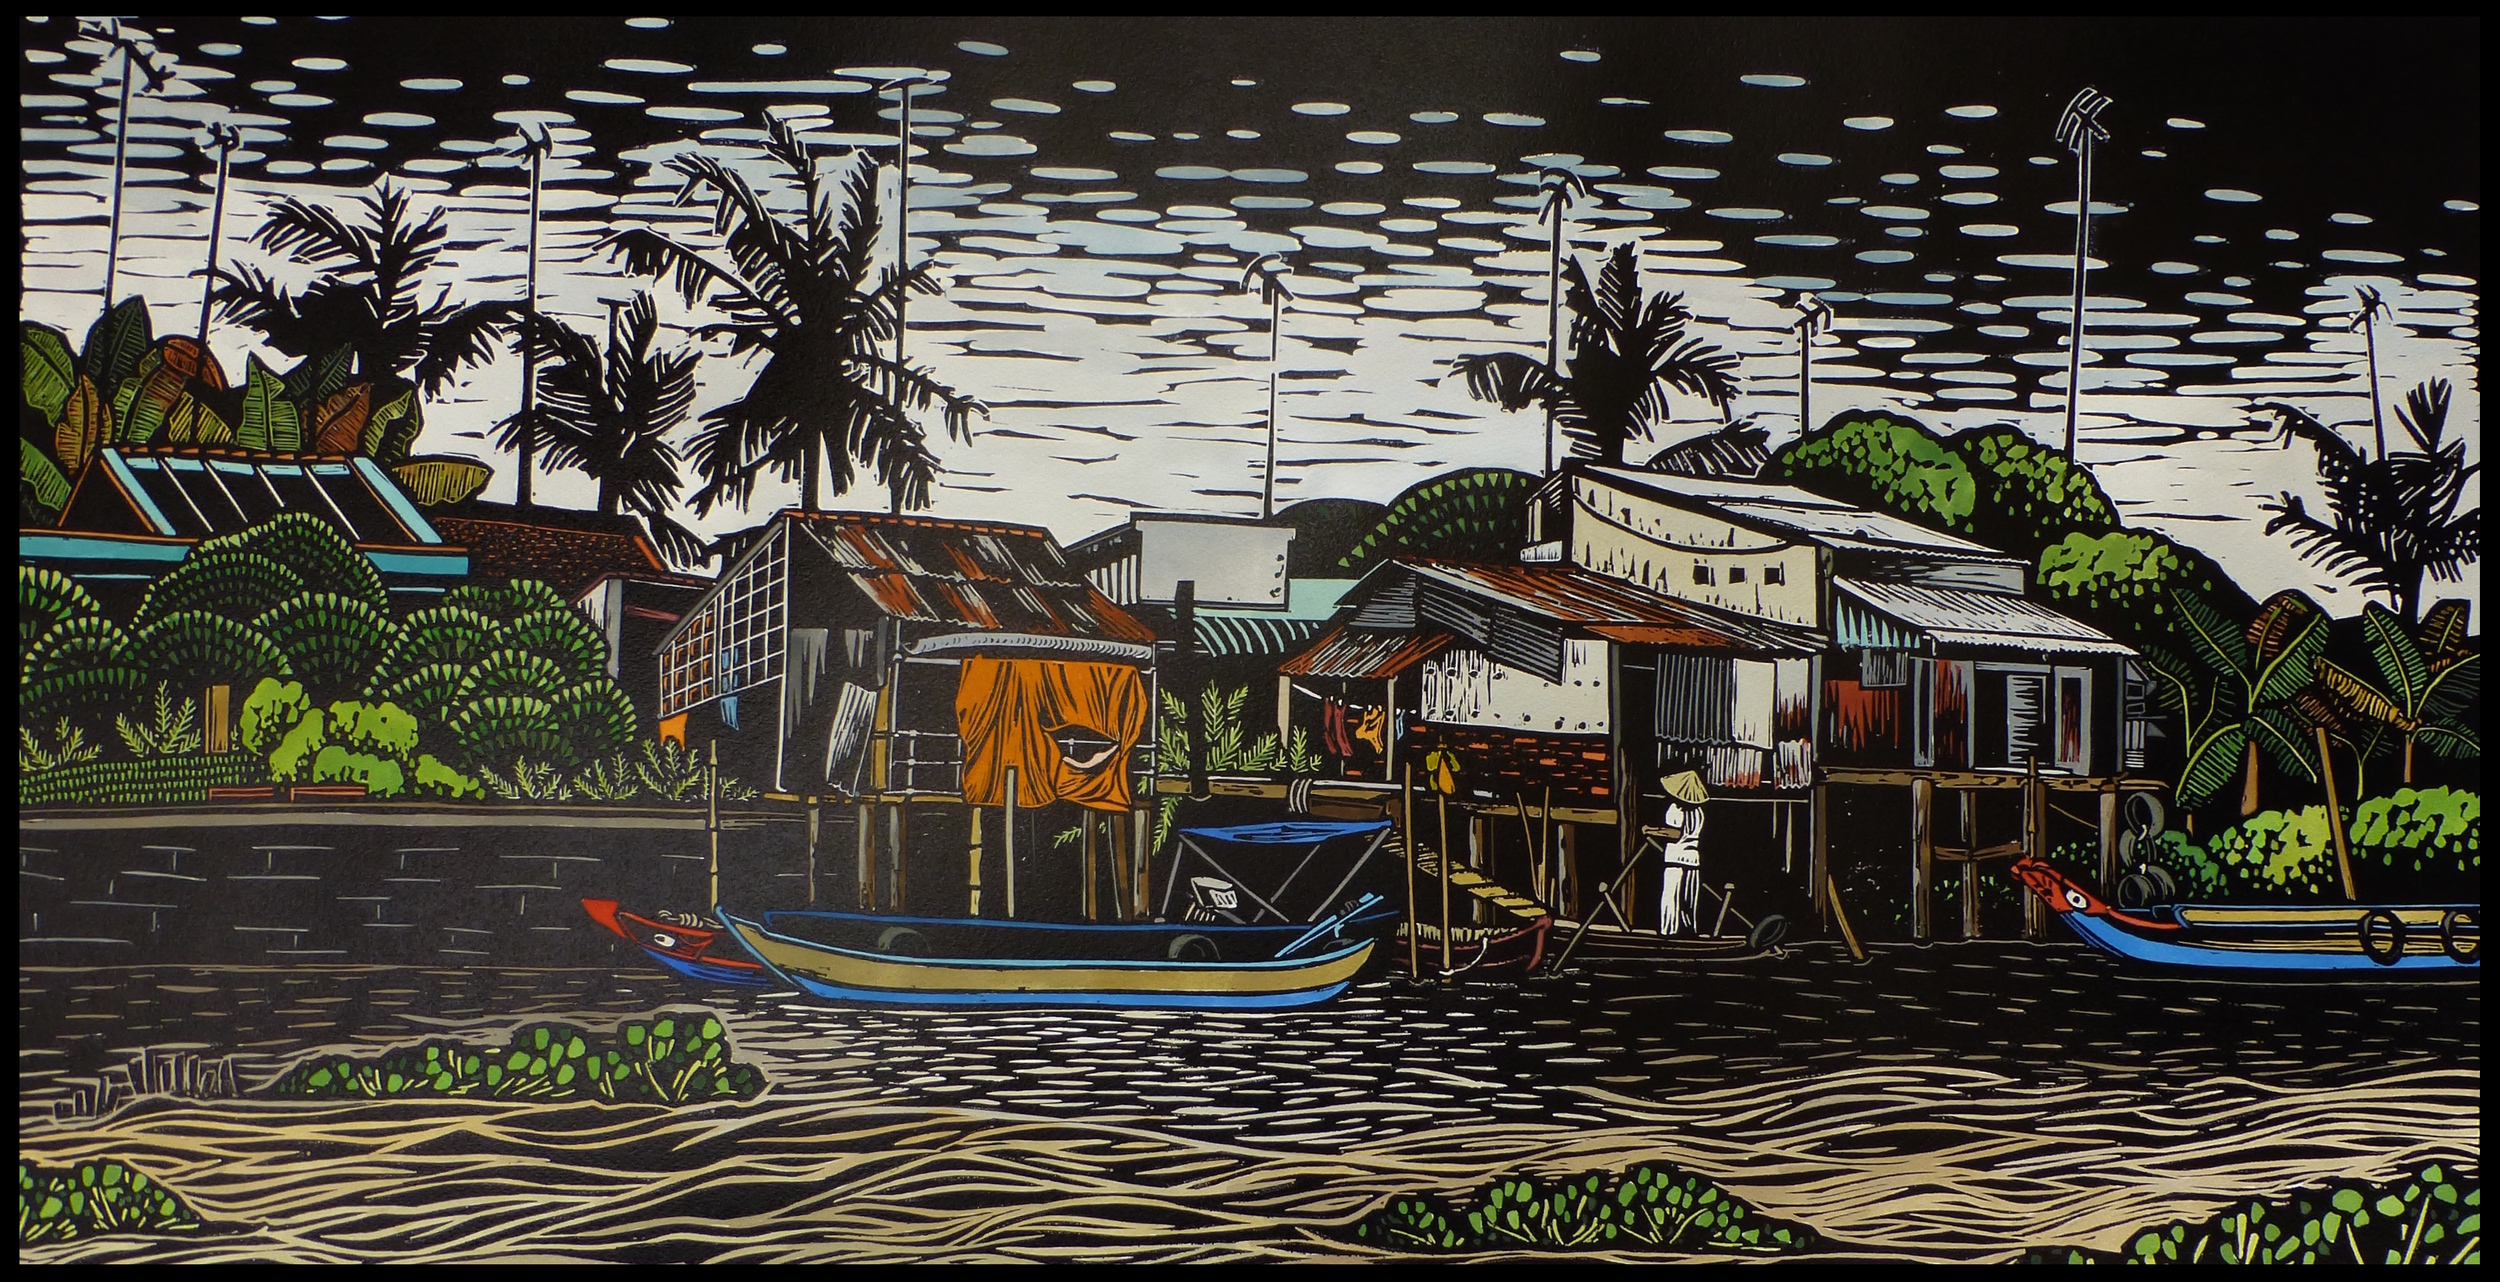 """Living on the Mekong Delta   Hand coloured linocut, 2015  Edition of 6  Image size: 46 cm x 86 cm  Paper size: 70 cm x 100 cm  $600                      Normal   0           false   false   false     EN-US   JA   X-NONE                                                                                                                                                                                                                                                                                                                                                                              /* Style Definitions */ table.MsoNormalTable {mso-style-name:""""Table Normal""""; mso-tstyle-rowband-size:0; mso-tstyle-colband-size:0; mso-style-noshow:yes; mso-style-priority:99; mso-style-parent:""""""""; mso-padding-alt:0cm 5.4pt 0cm 5.4pt; mso-para-margin:0cm; mso-para-margin-bottom:.0001pt; mso-pagination:widow-orphan; font-size:12.0pt; font-family:Cambria; mso-ascii-font-family:Cambria; mso-ascii-theme-font:minor-latin; mso-hansi-font-family:Cambria; mso-hansi-theme-font:minor-latin; mso-ansi-language:EN-US;}      For centuries, people have lived along the Mekong Delta. The river system in Vietnam has dramatically shaped and affected the lives of these people, who have adapted their entire lifestyle to suit living by the river. Boats are used for transport and conducting business upon the water, and from frequent flooding, stilt houses have evolved. Floods also bring the fertile soil that is so important to continue farming in the area, providing a livelihood for many people. However, life on the Mekong Delta can be precarious, often depending upon the whims of nature."""